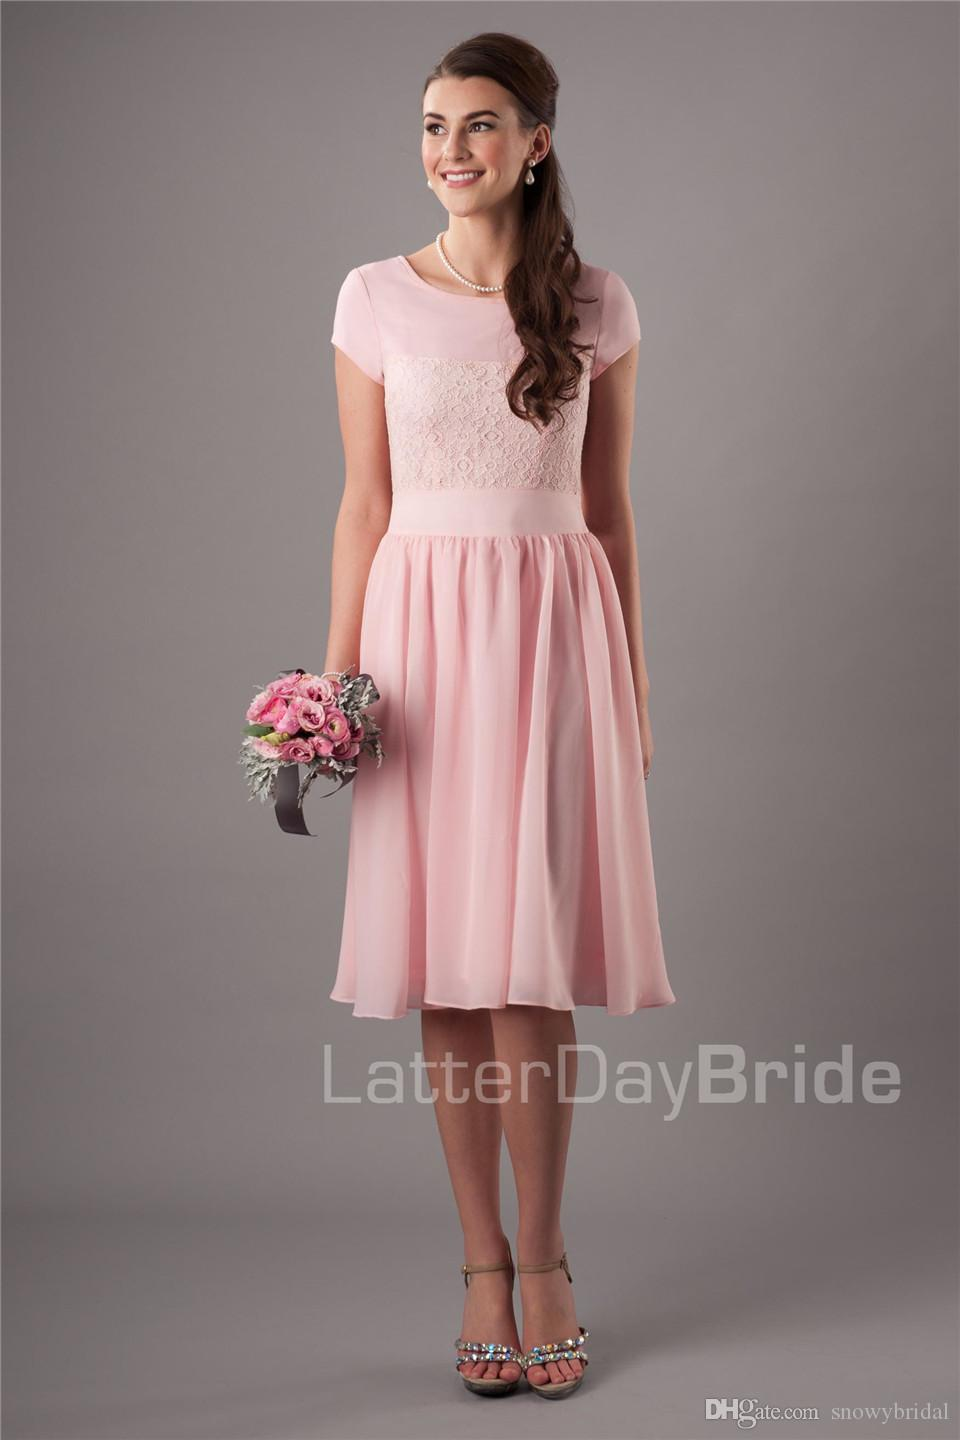 Blushing short modest bridesmaid dresses with short sleeves lace blushing short modest bridesmaid dresses with short sleeves lace chiffon a line maids honor dresses knee length wedding party dresses custom purple ombrellifo Image collections